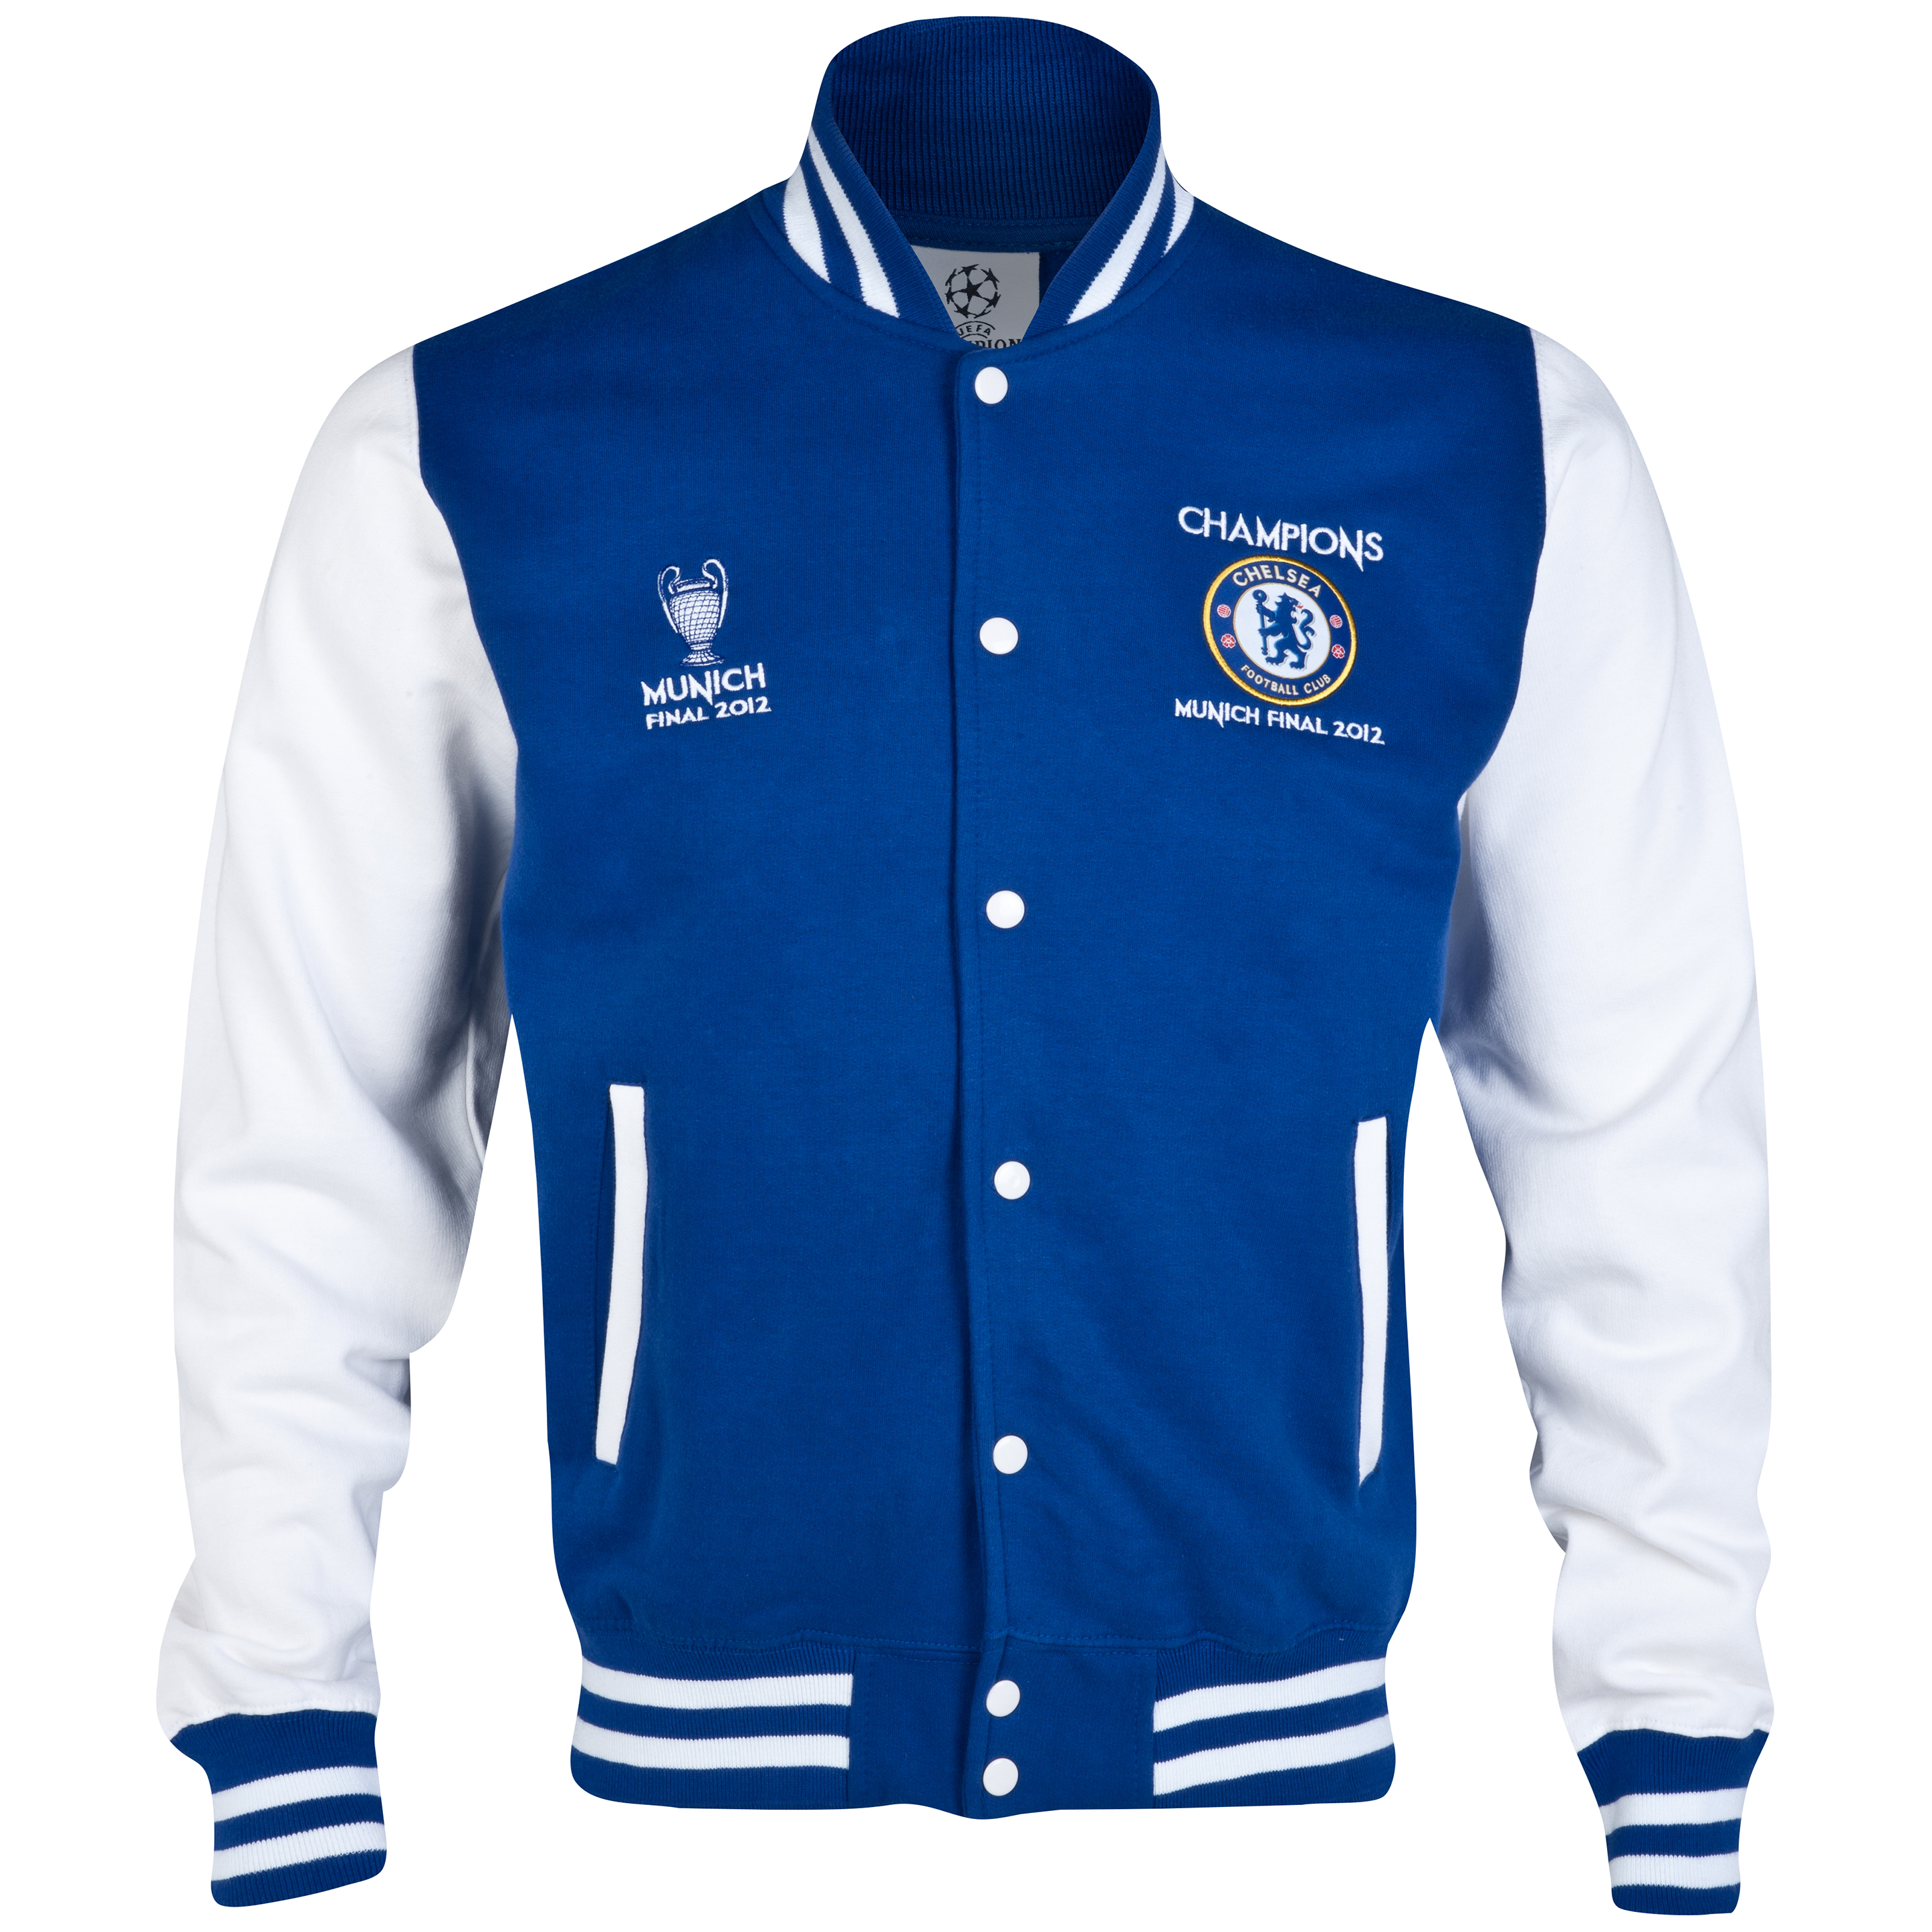 Chelsea UEFA Champions League Printed Varsity Baseball Jacket - Royal / White